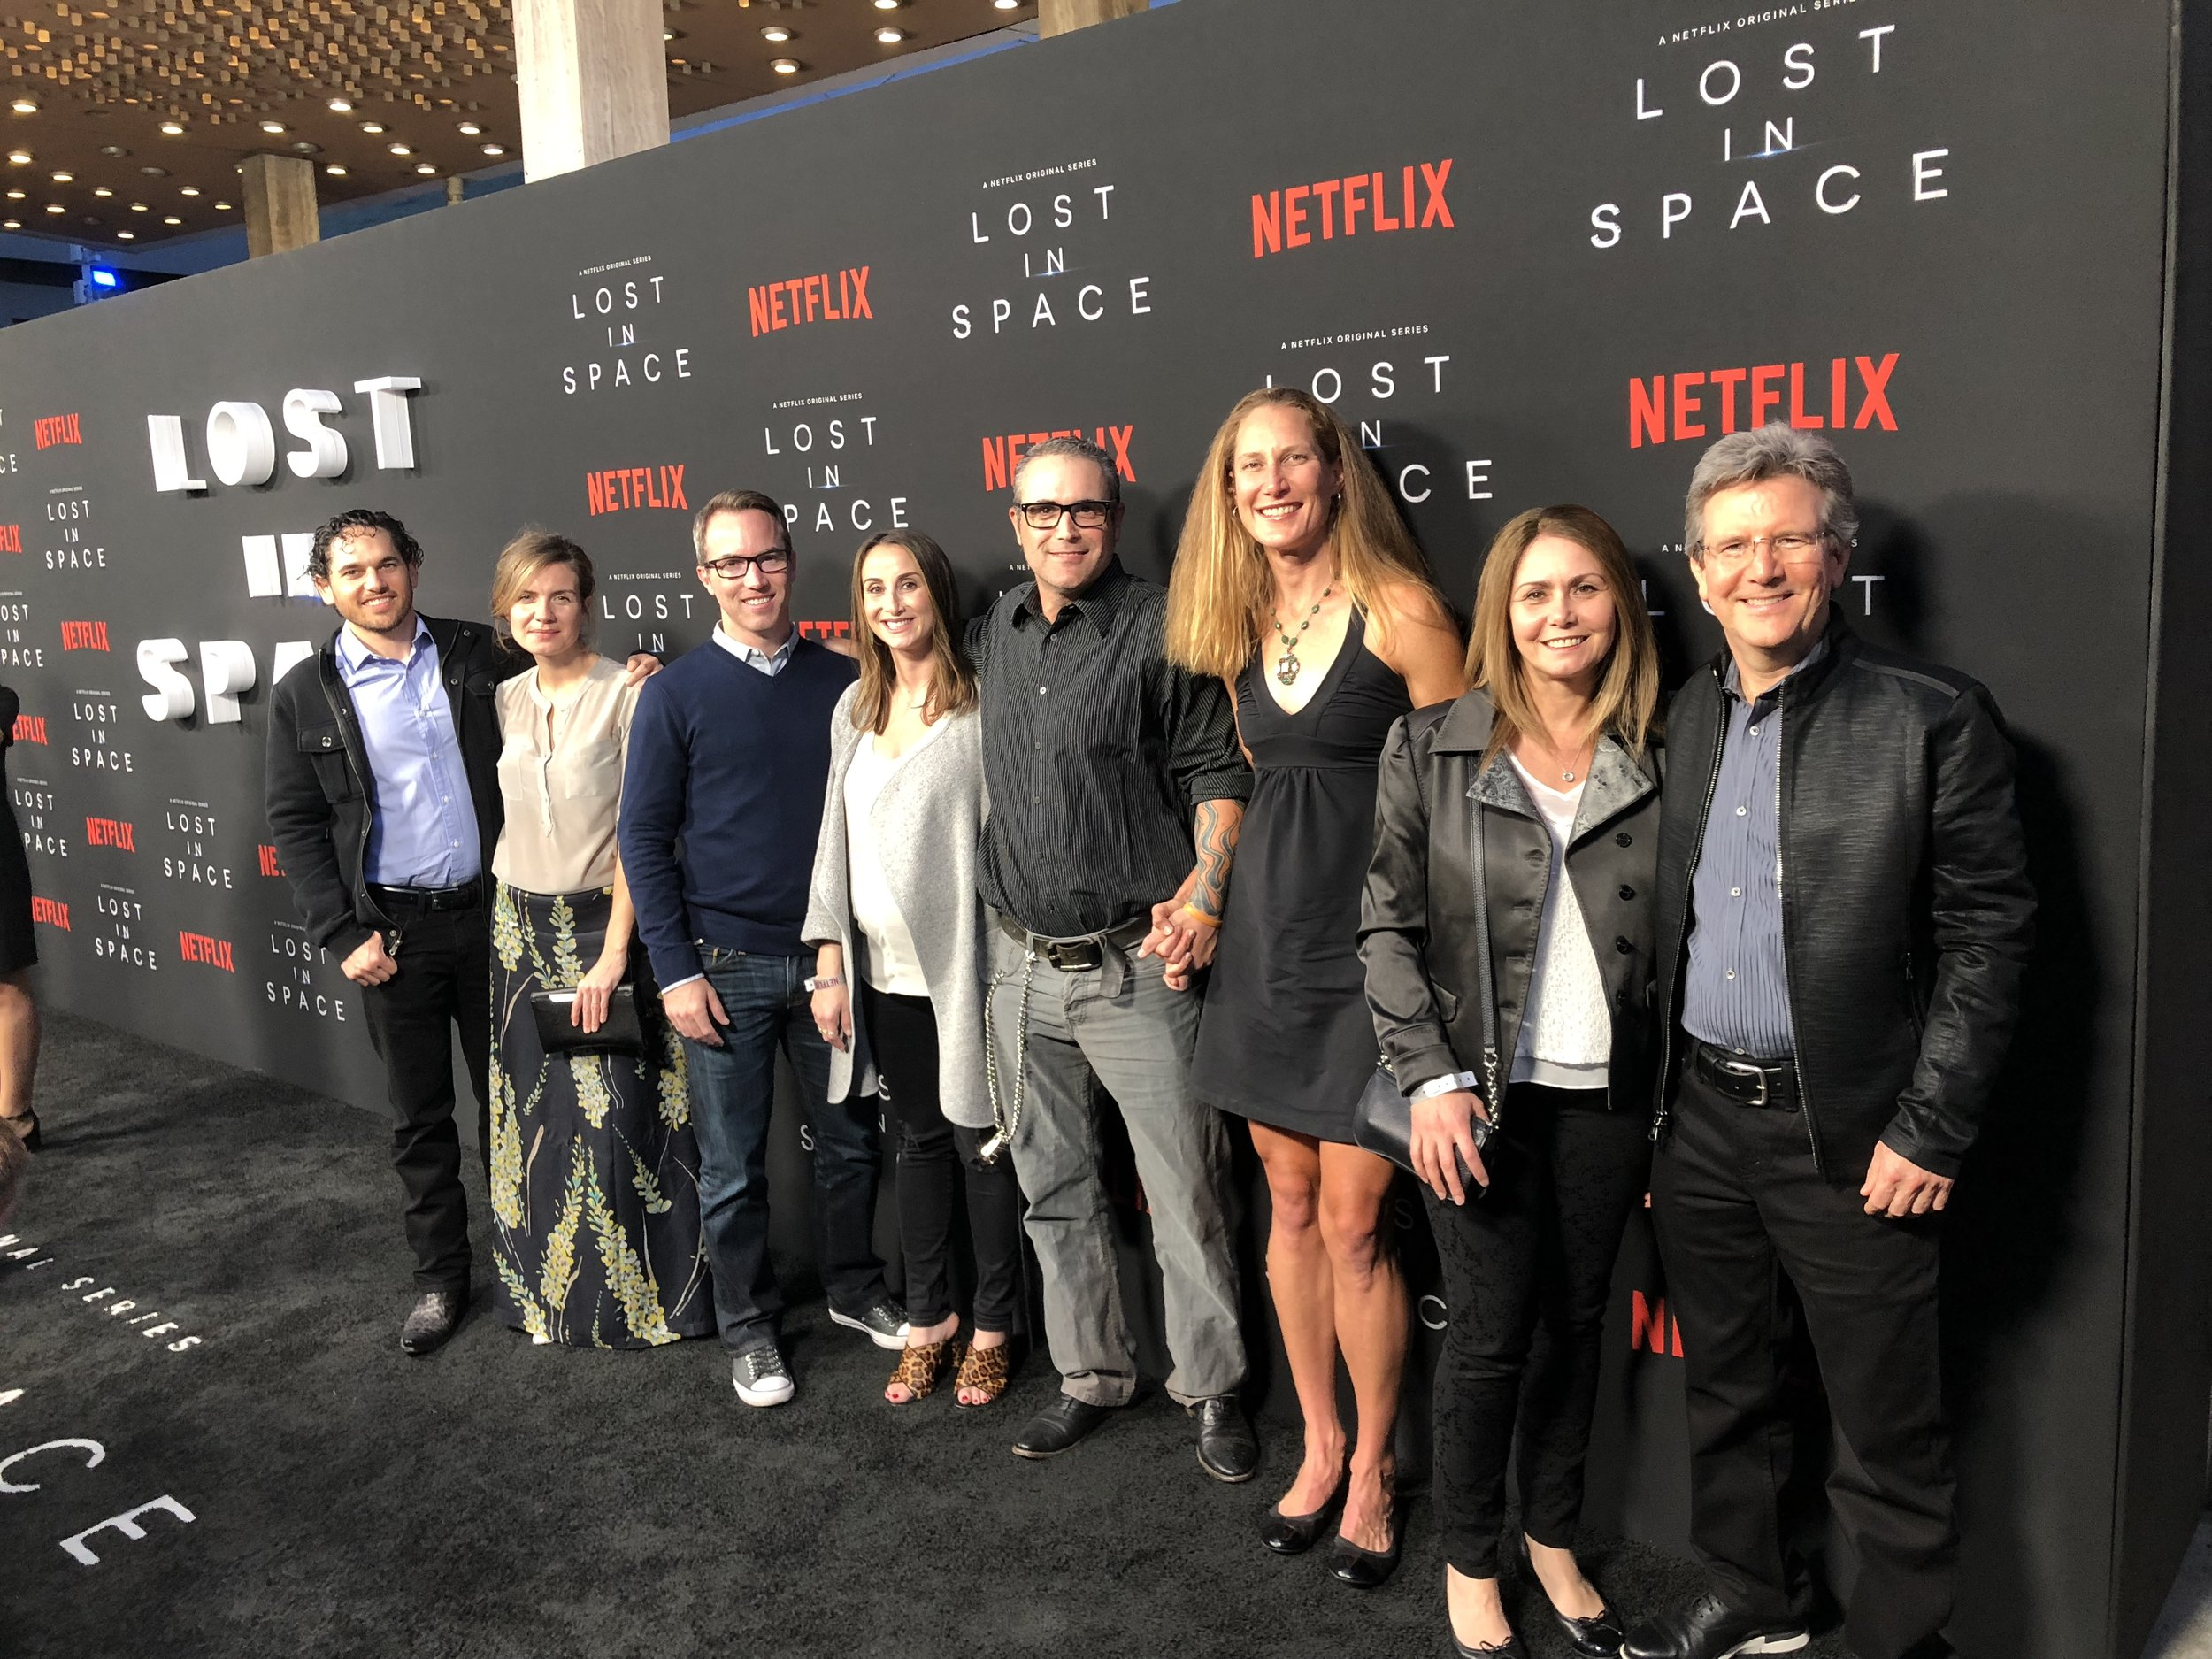 The Lost In Space VFX team and their teammates sneaking a photo on the step and repeat after the stars had all shuffled through. Thank you Netflix marketing team!